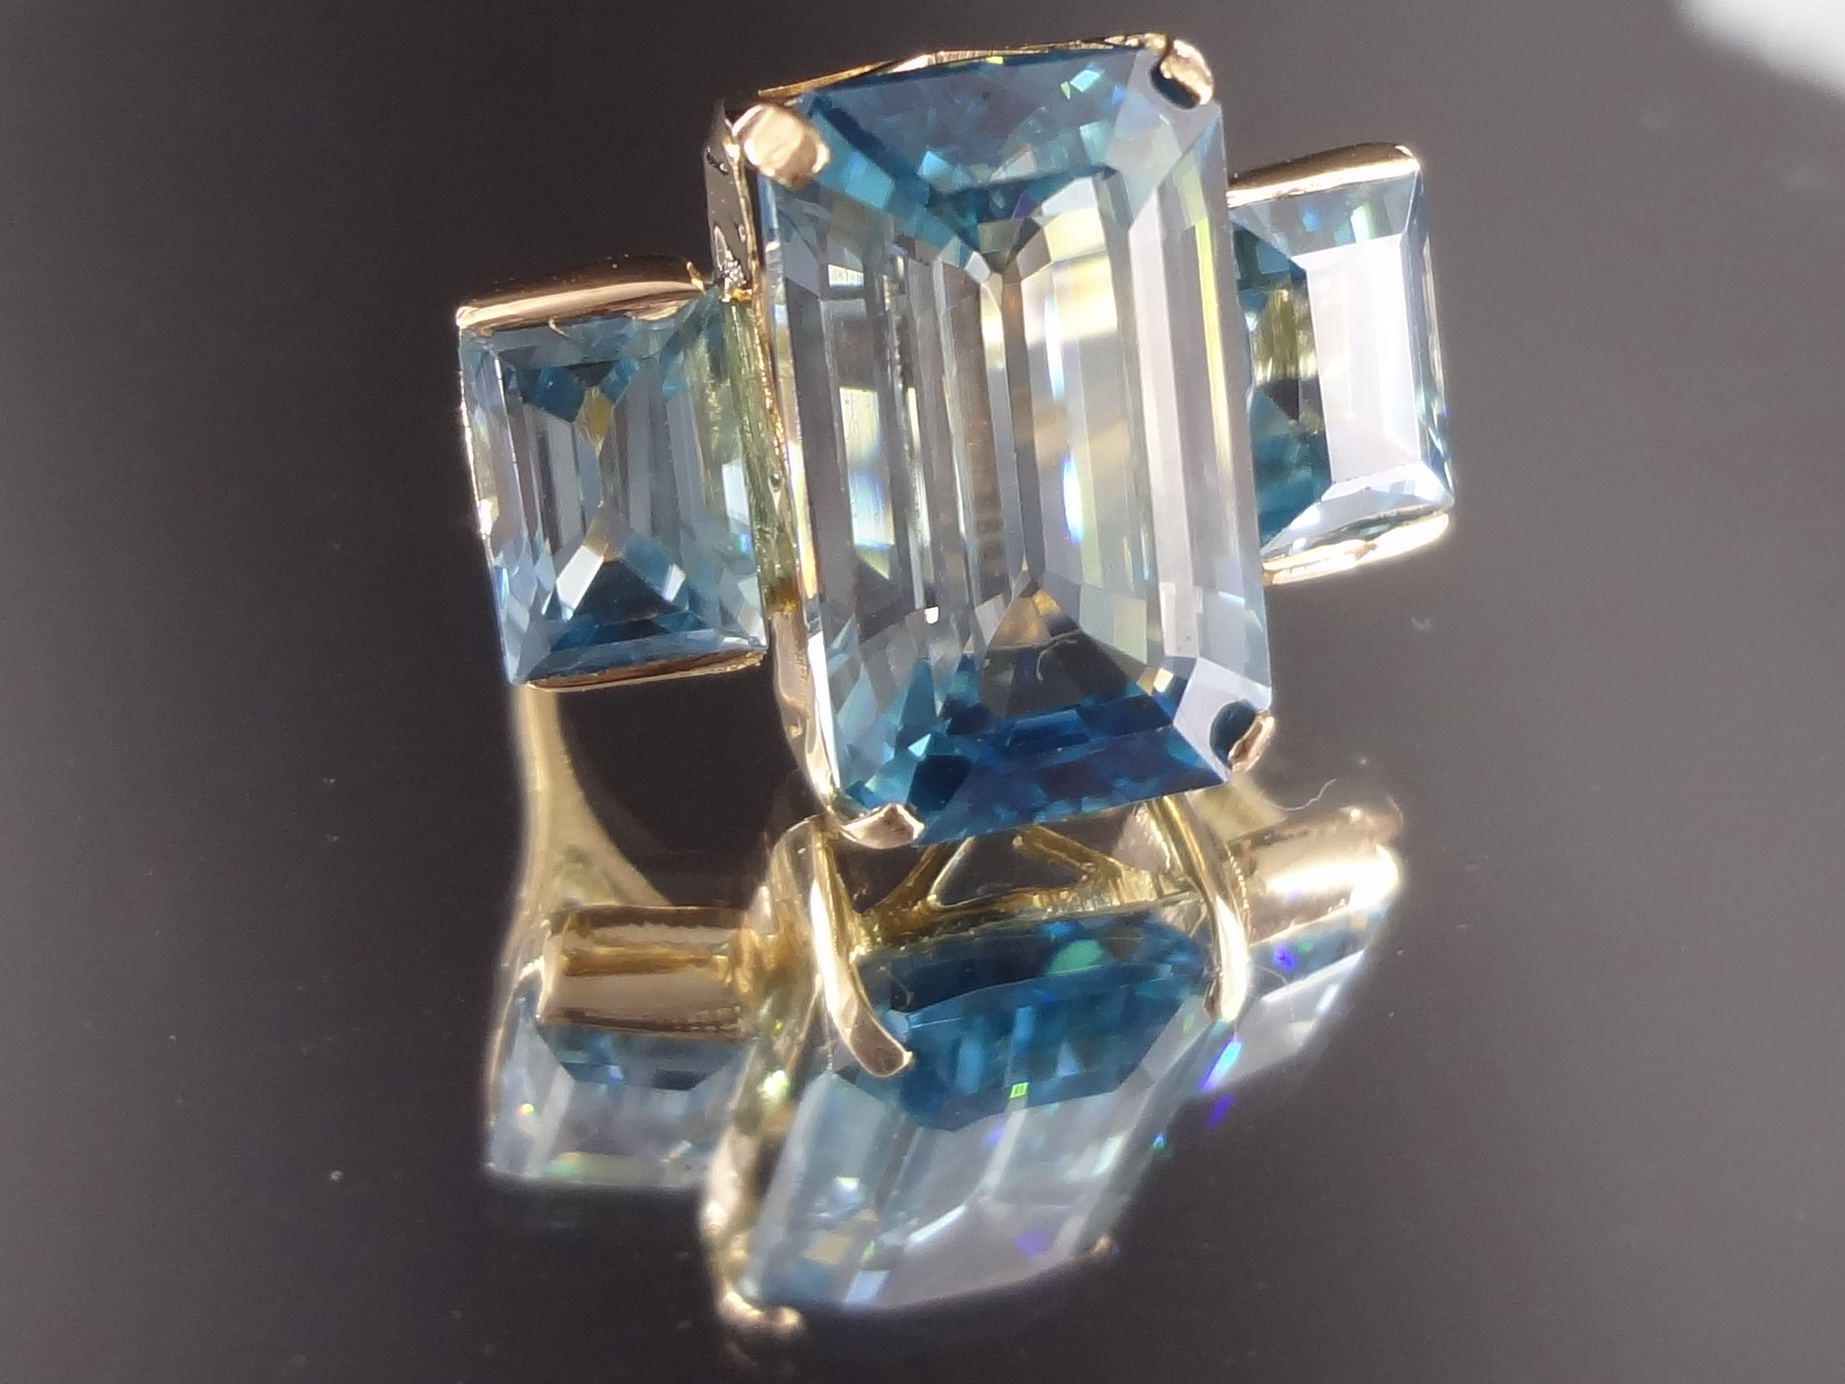 Purchase large emerald cut blue Zircon bi-color gemstone white and blue.